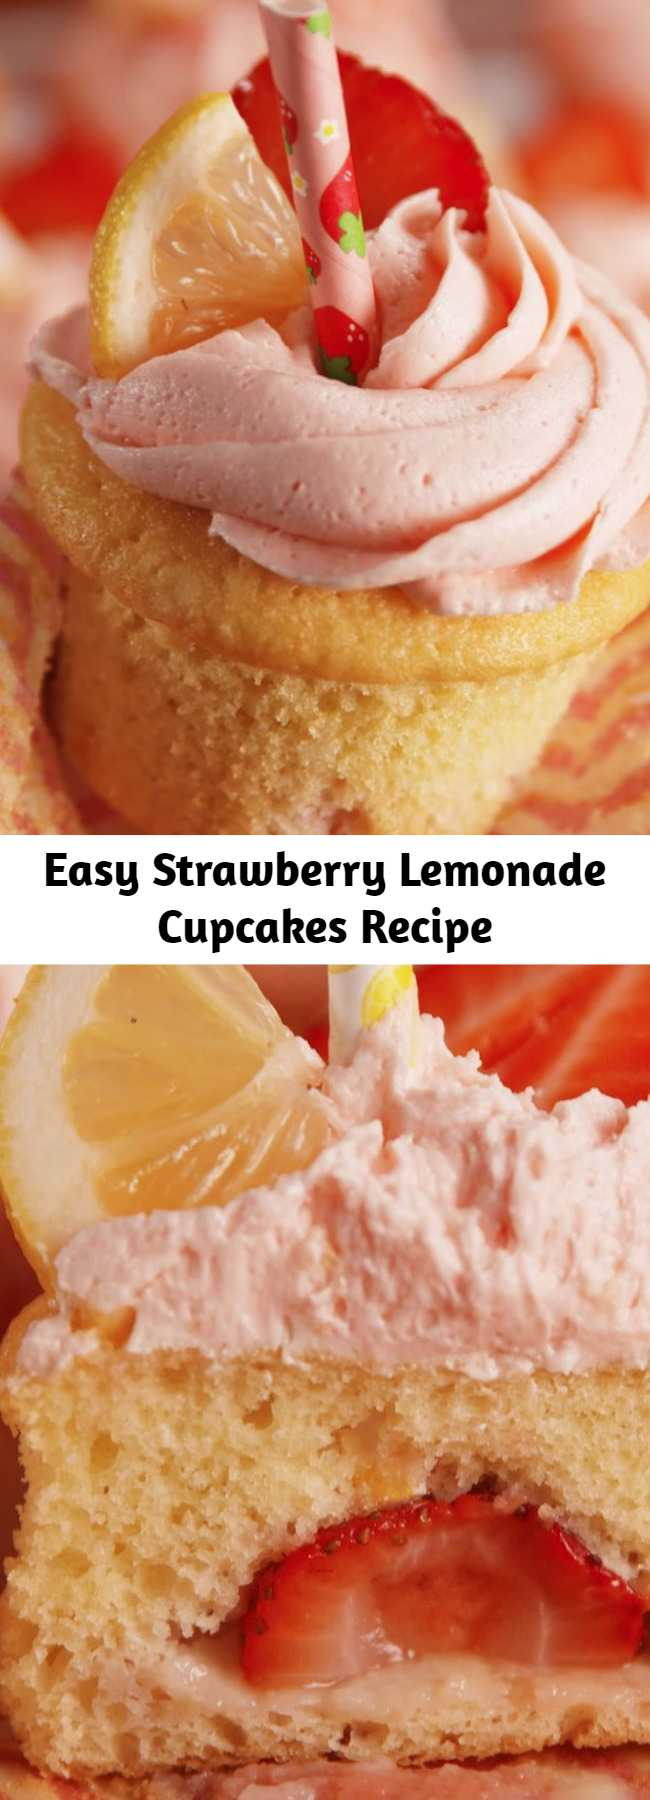 Easy Strawberry Lemonade Cupcakes Recipe - Sweet strawberry and tart lemon are seriously perfect together.